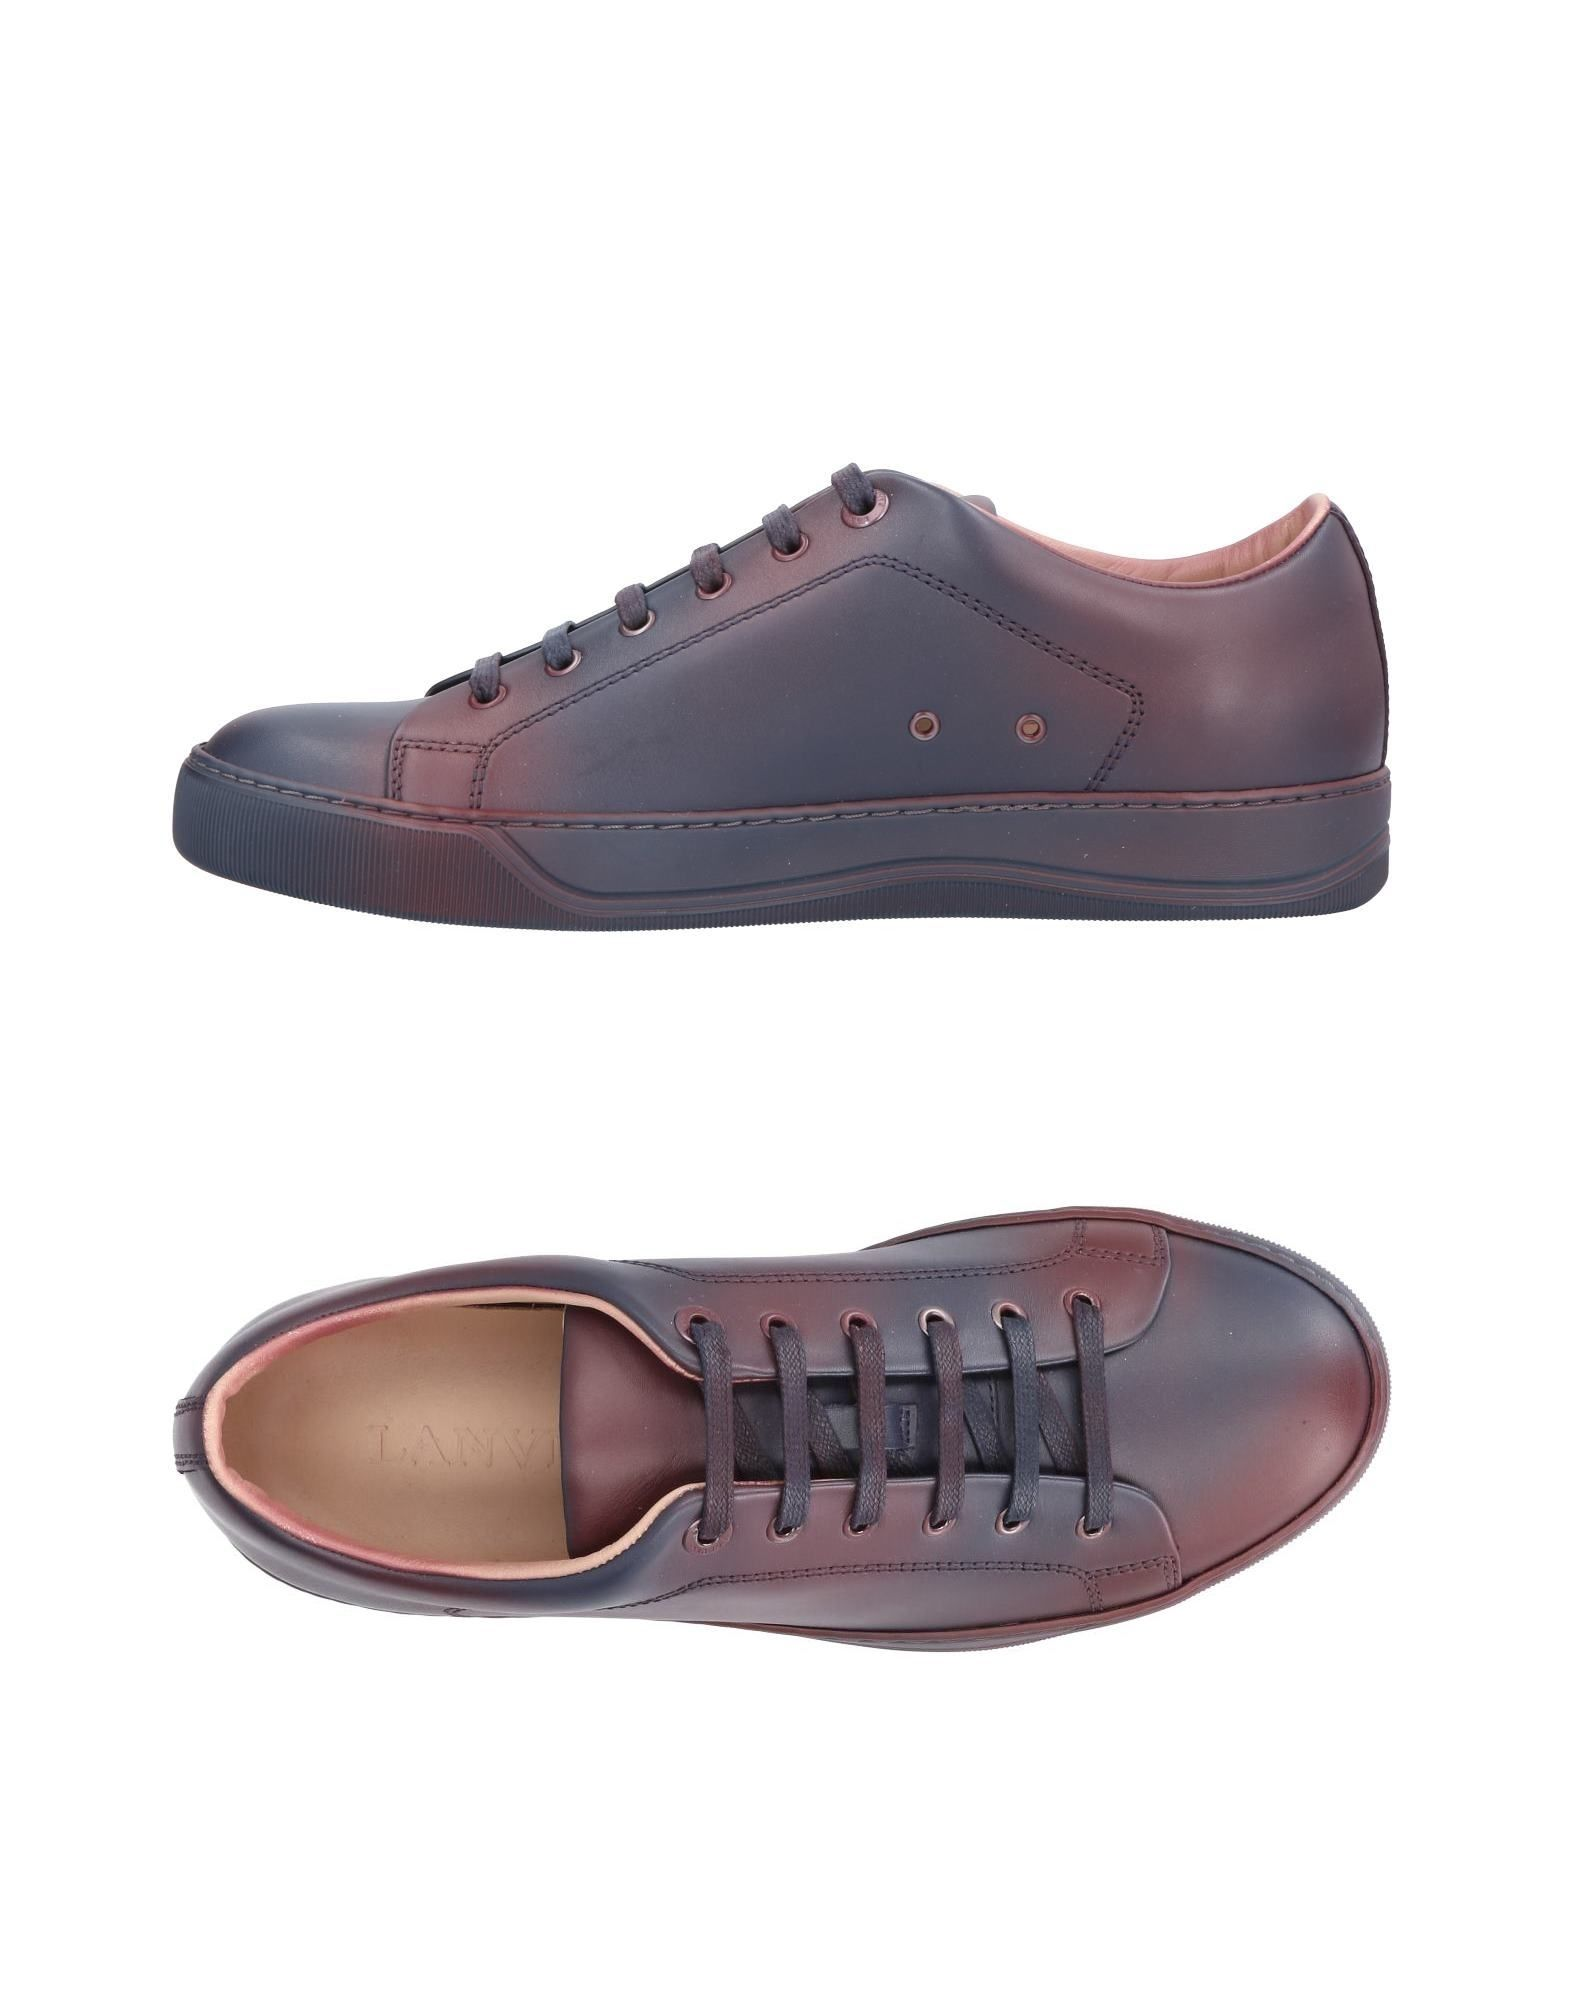 Lanvin Sneakers - Men Lanvin Sneakers - online on  Canada - Sneakers 11463949RU 9fbdfb